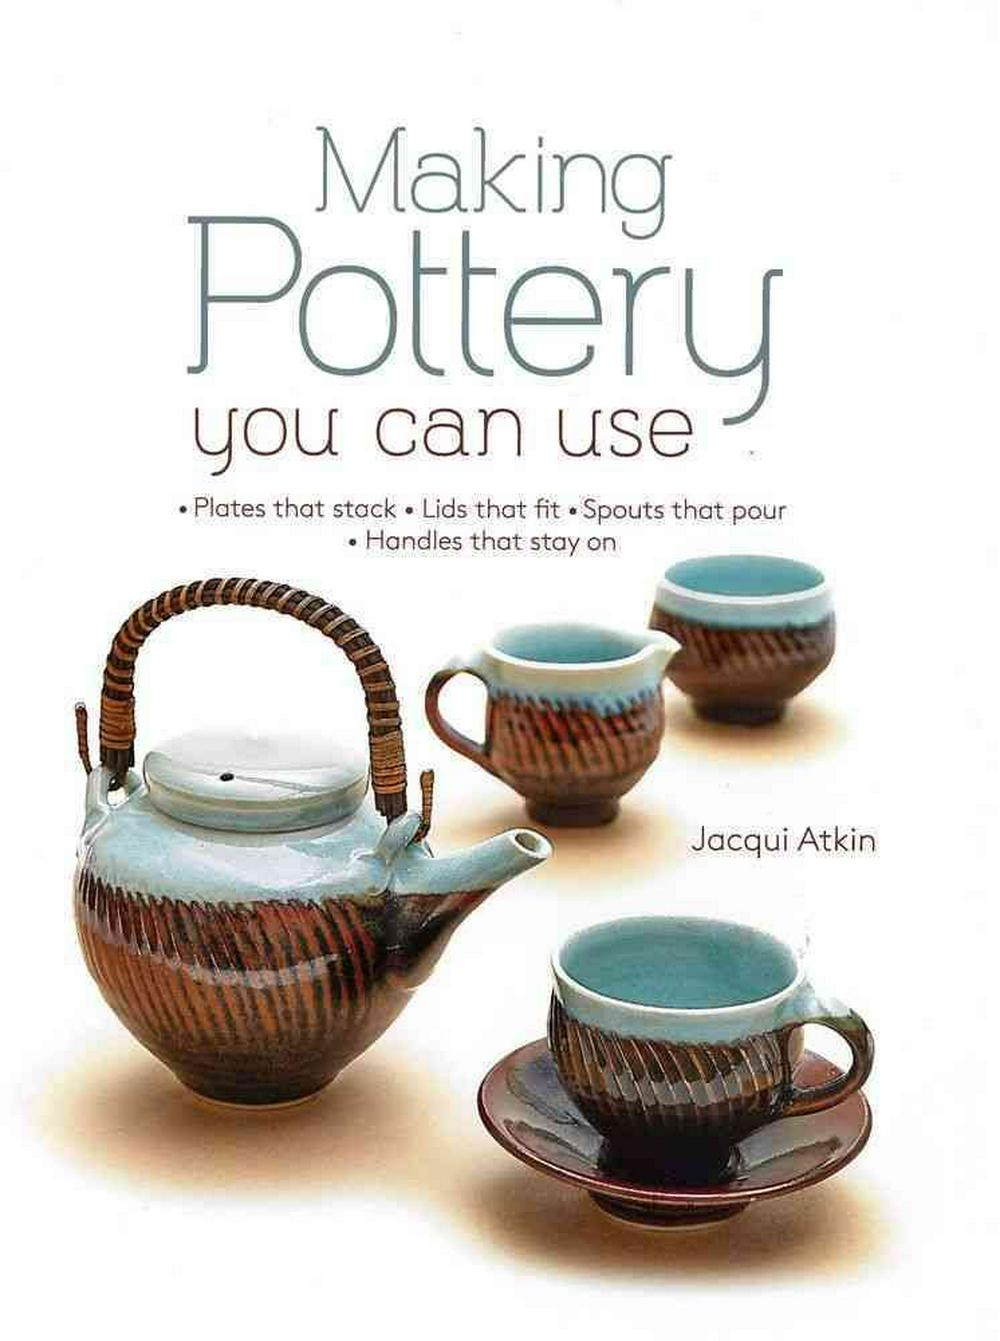 Making Pottery You Can Use by Jacqui Atkin, ISBN: 9780764168734